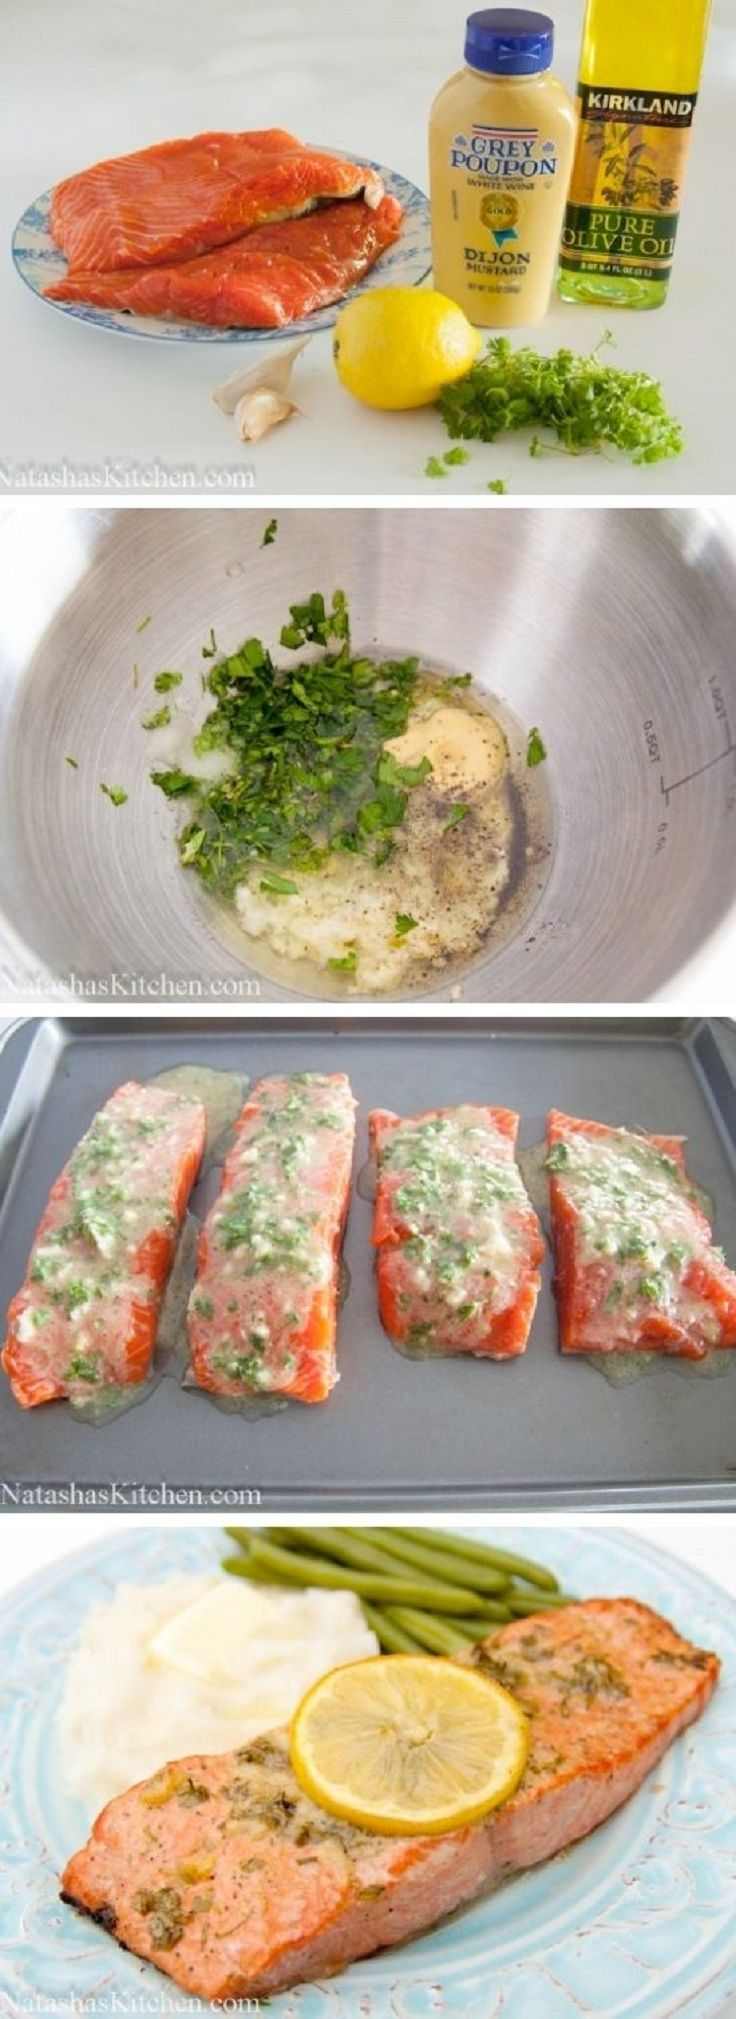 beautifly the online fashion store Baked Salmon with Garlic  amp  Dijon